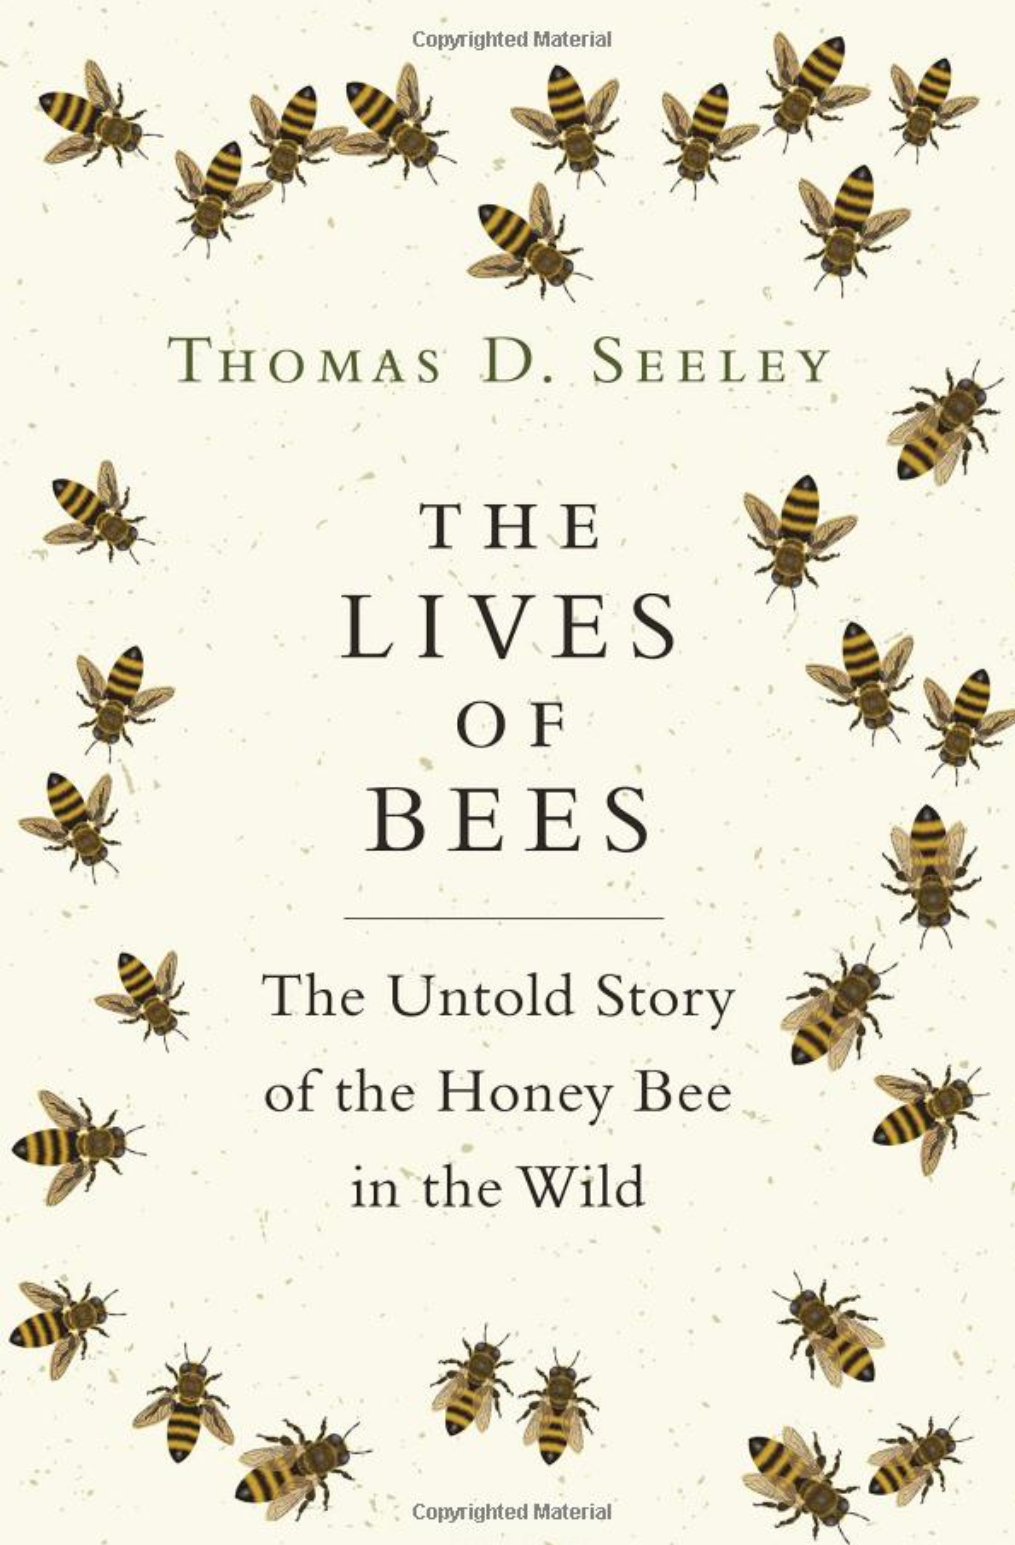 The lives of bees: the untold story of the honey bee in the wild - Seeley